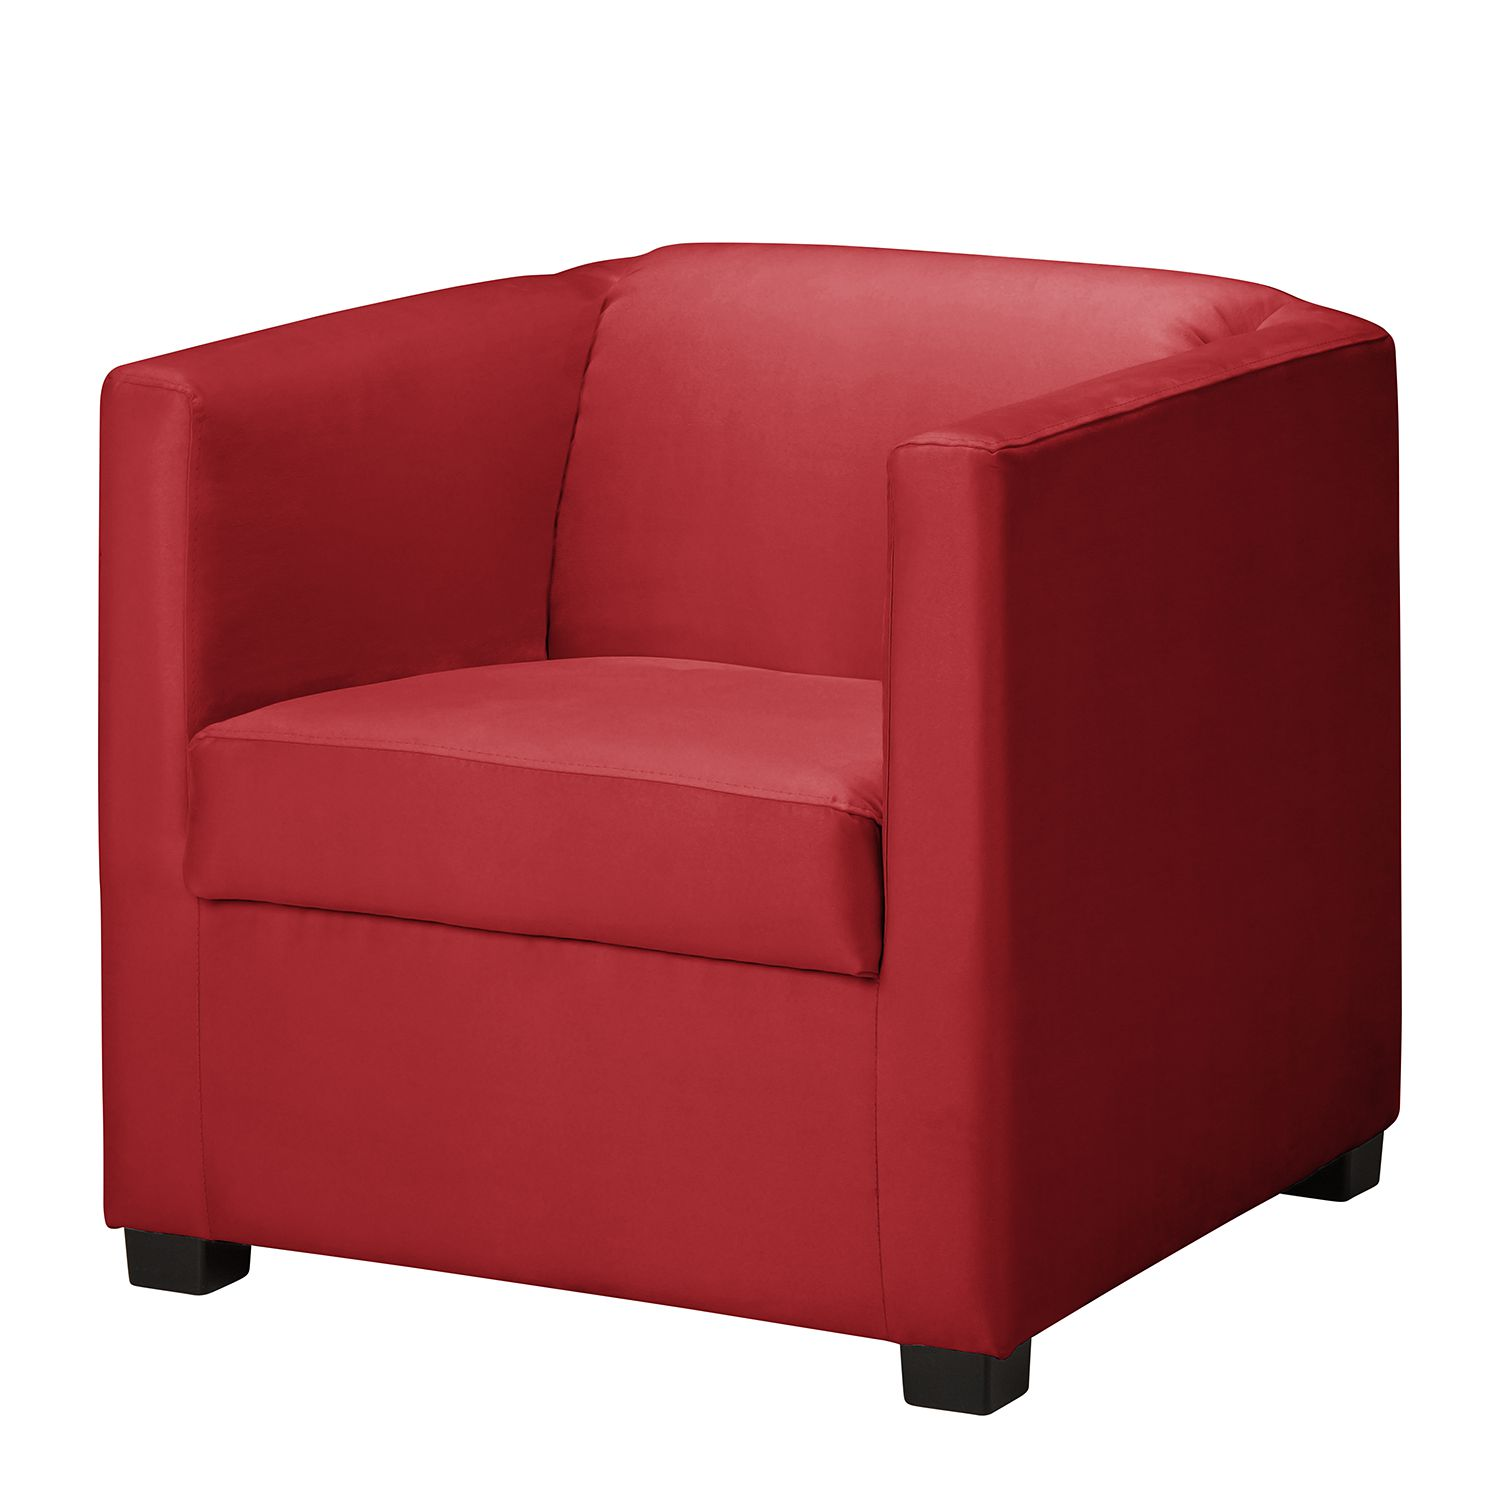 Home24 Fauteuils Fauteuil Cuir Rouge Relax Serrurieralaclef